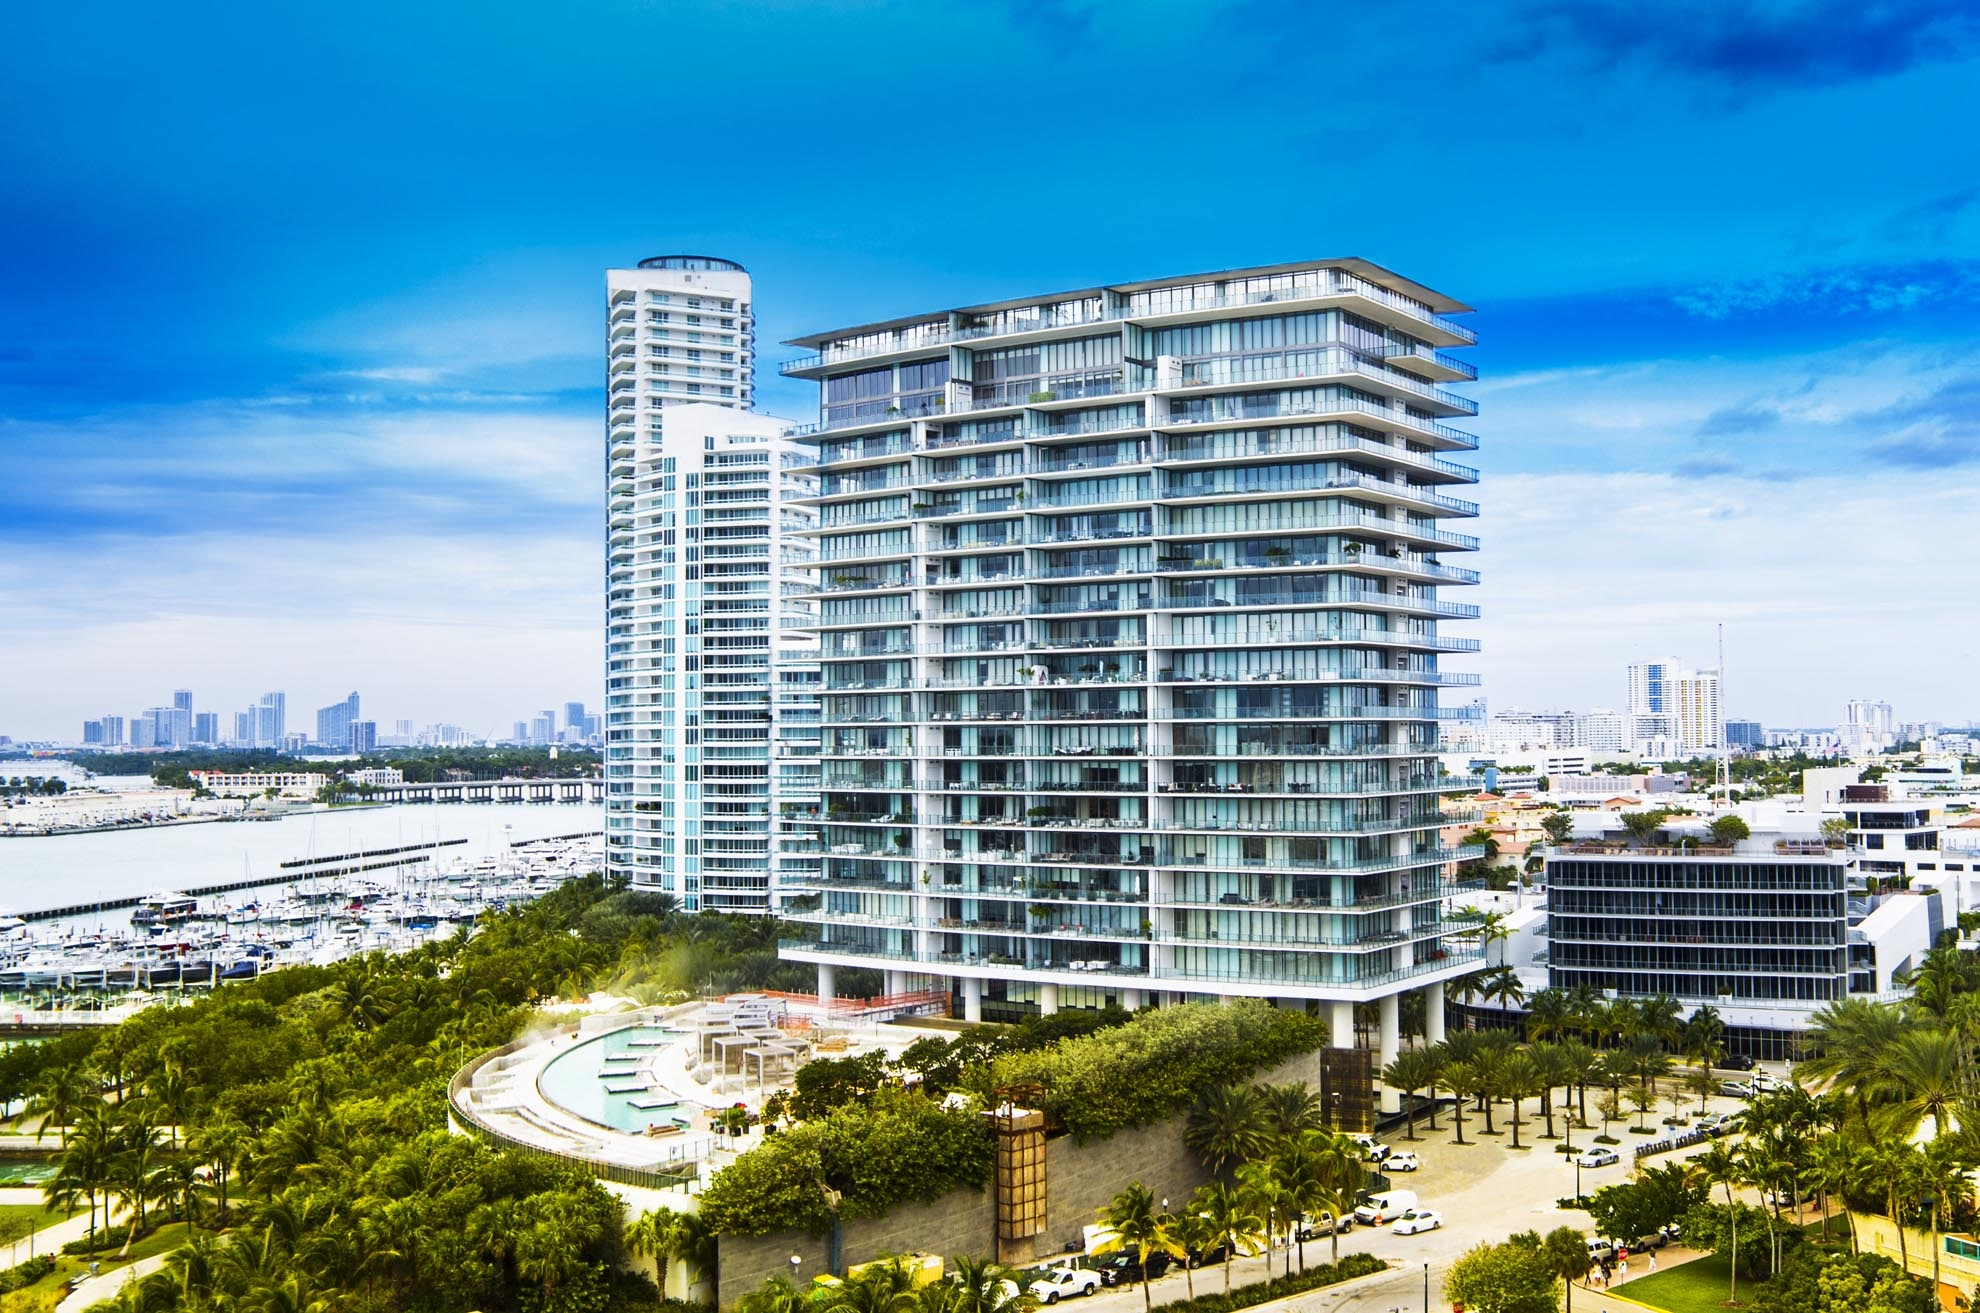 Drone photograph of Apogee Condominiums Miami Beach FL